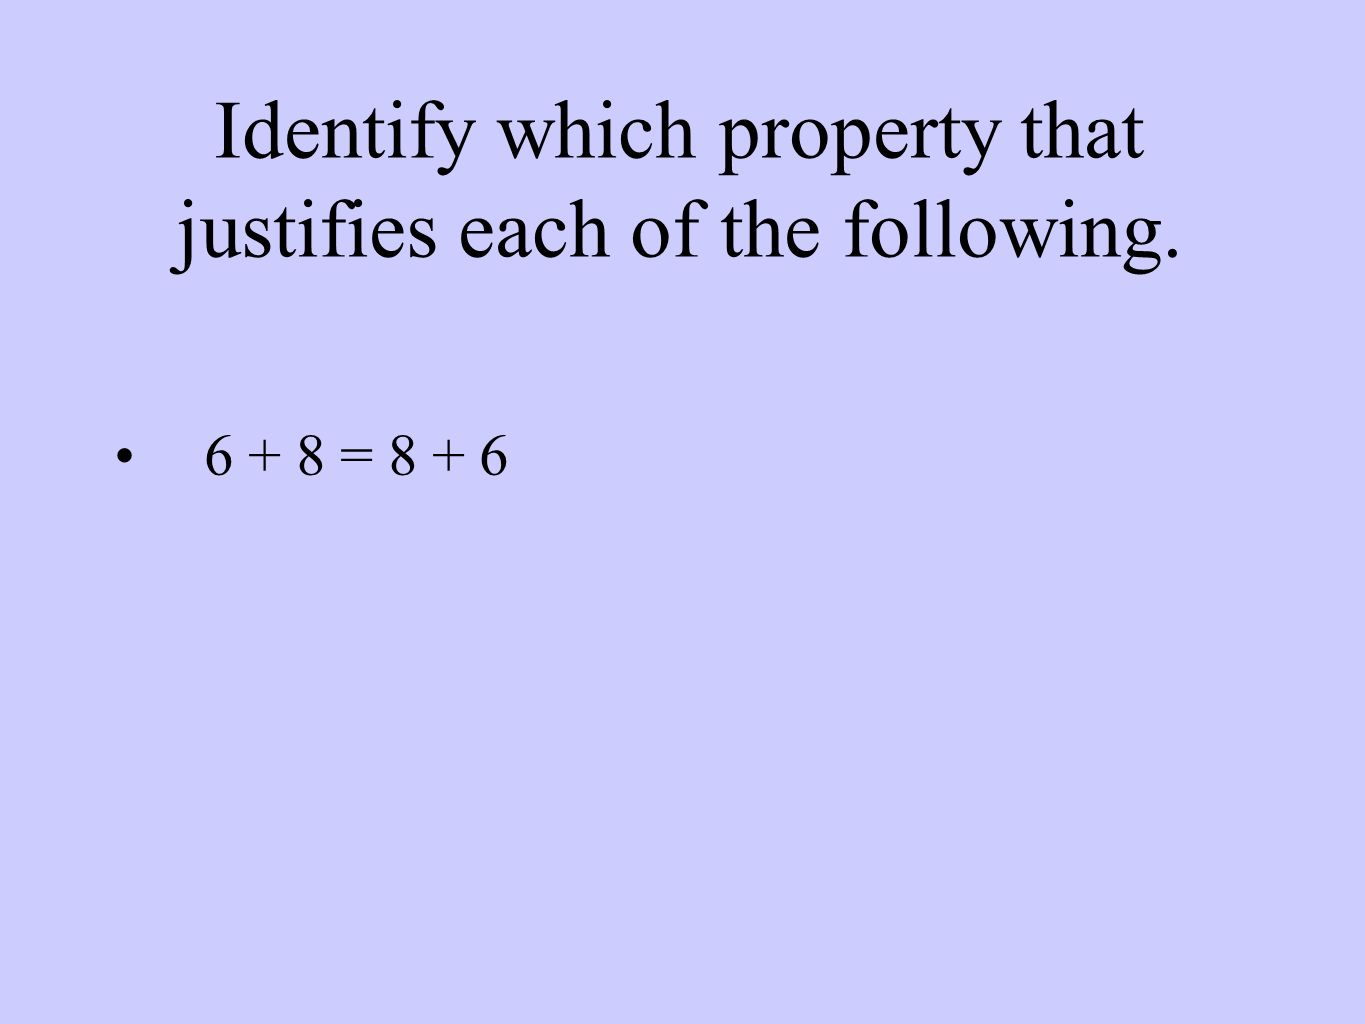 Identify which property that justifies each of the following = 8 + 6